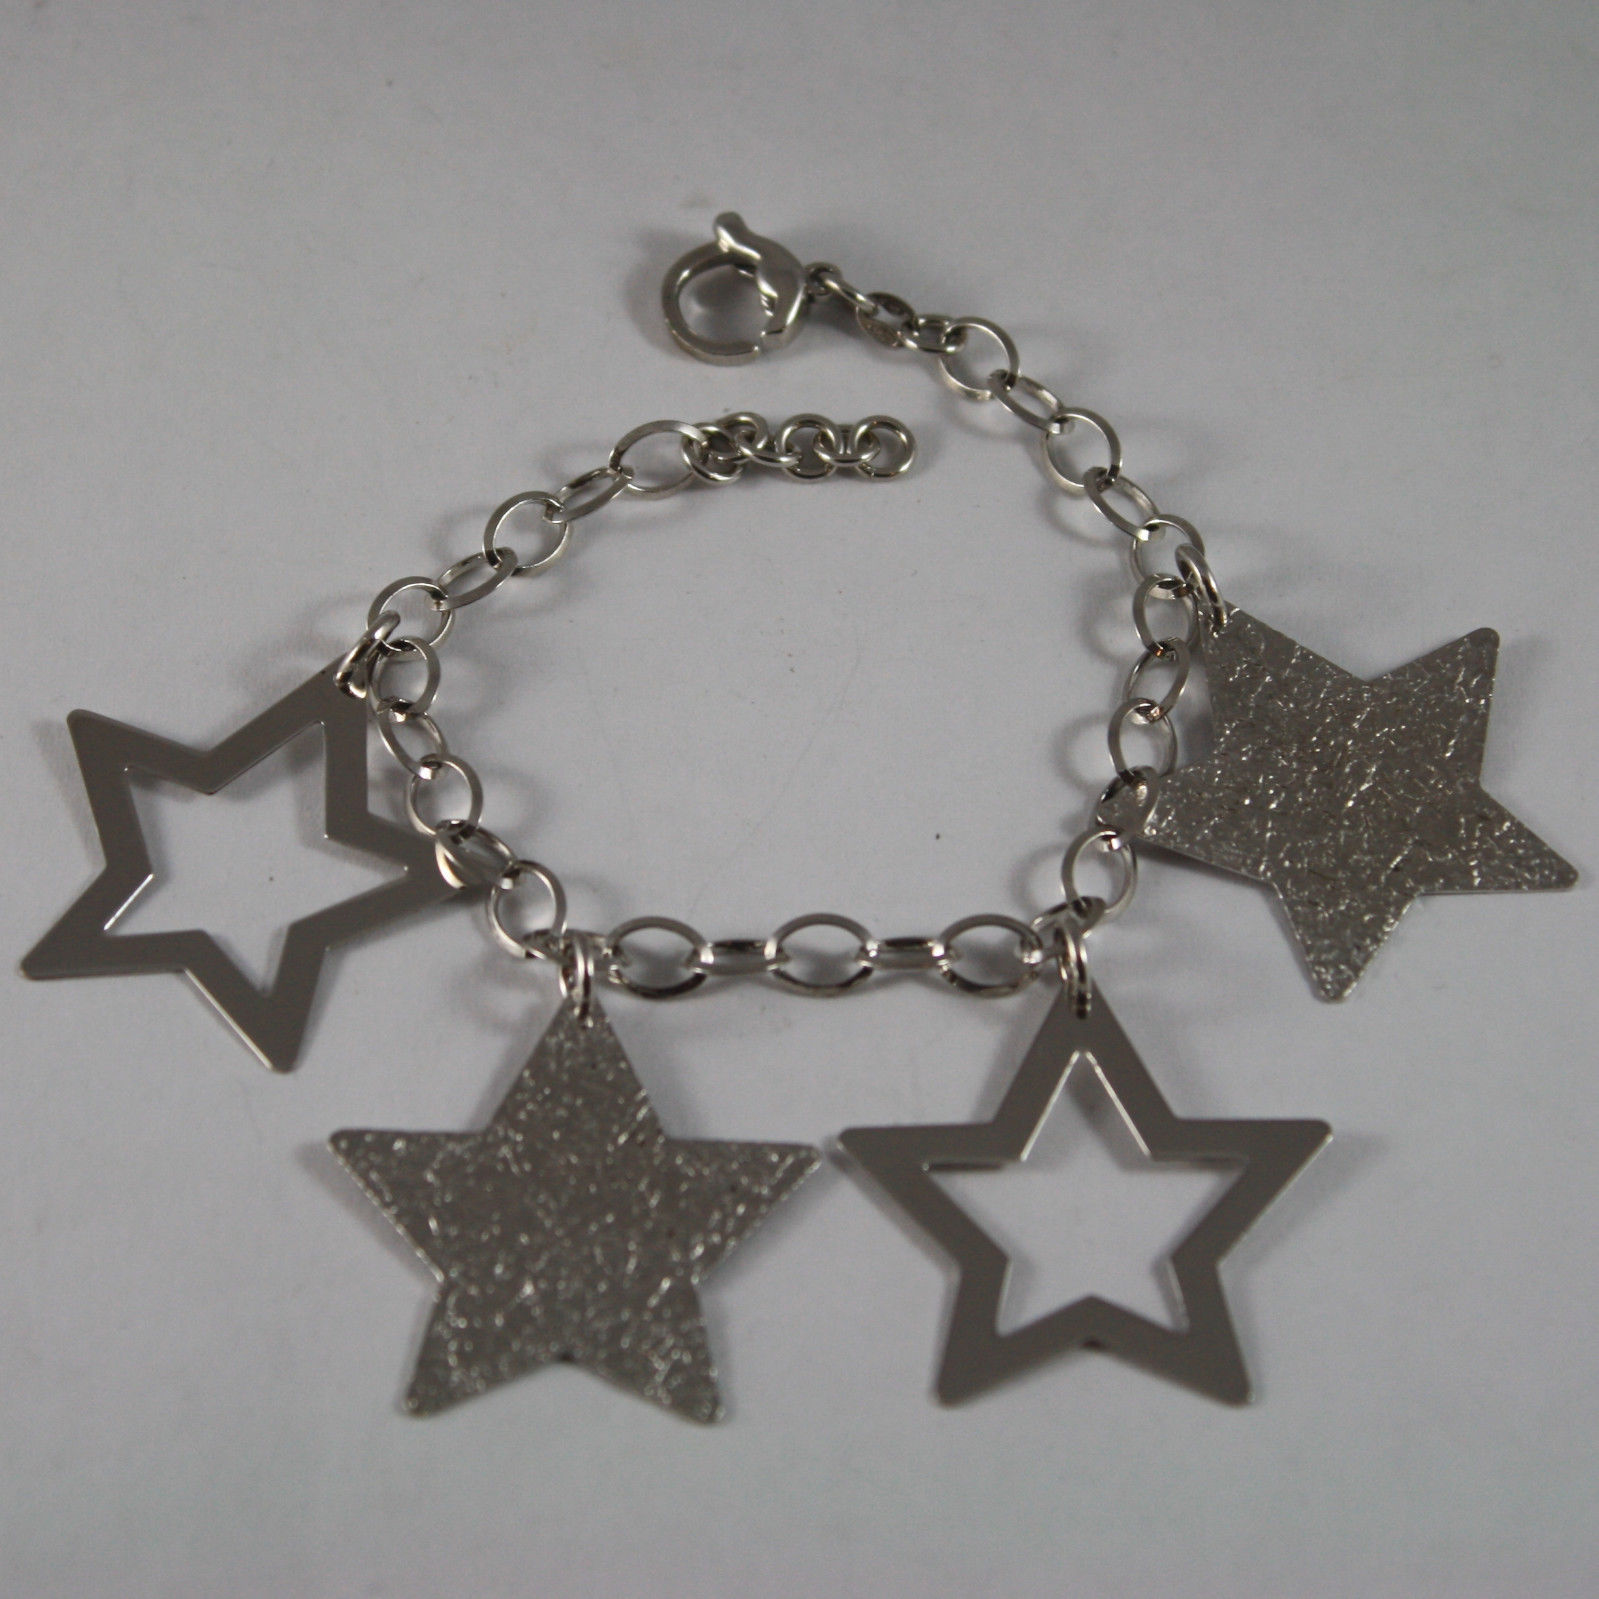 .925 RHODIUM SILVER BRACELET WITH GLOSSY AND HAMMERED STARS